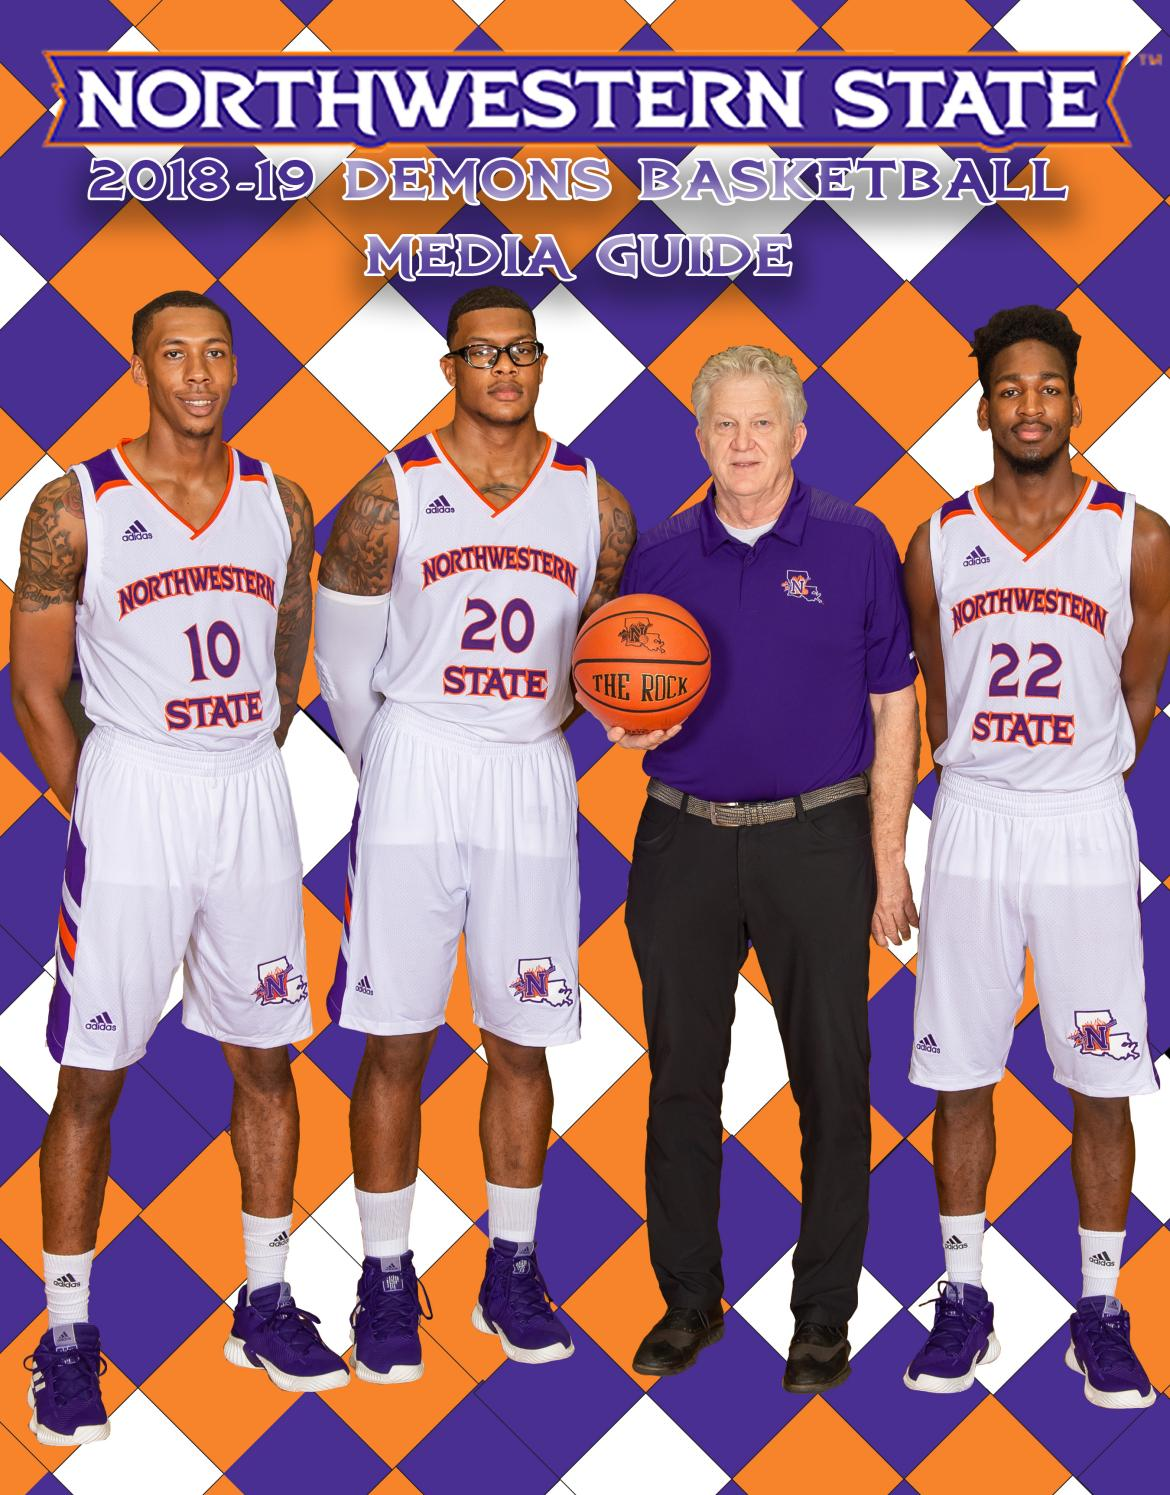 079214360 2018-19 Northwestern State Men's Basketabll Media Guide by Northwestern  State Sports Information - issuu